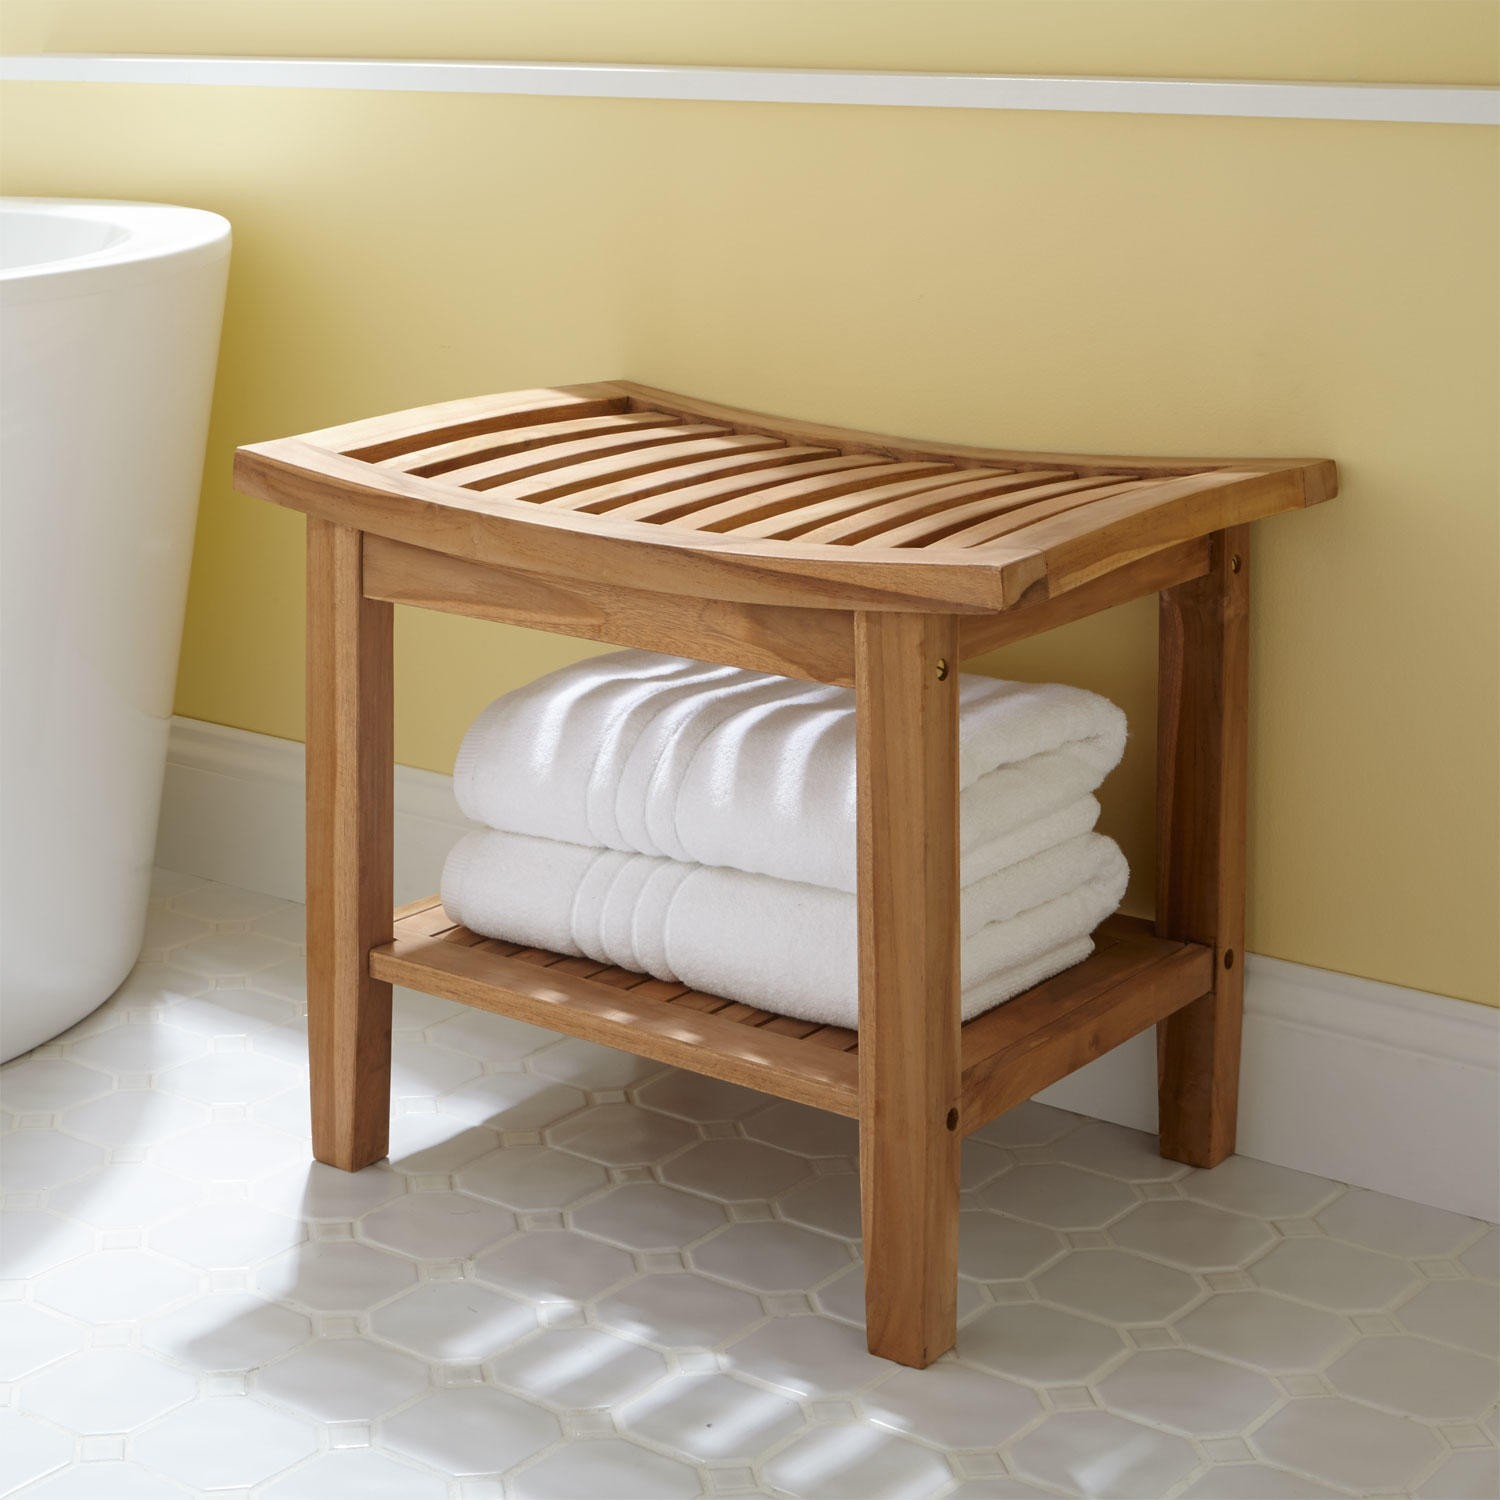 The simple additions for relaxing bathroom stool